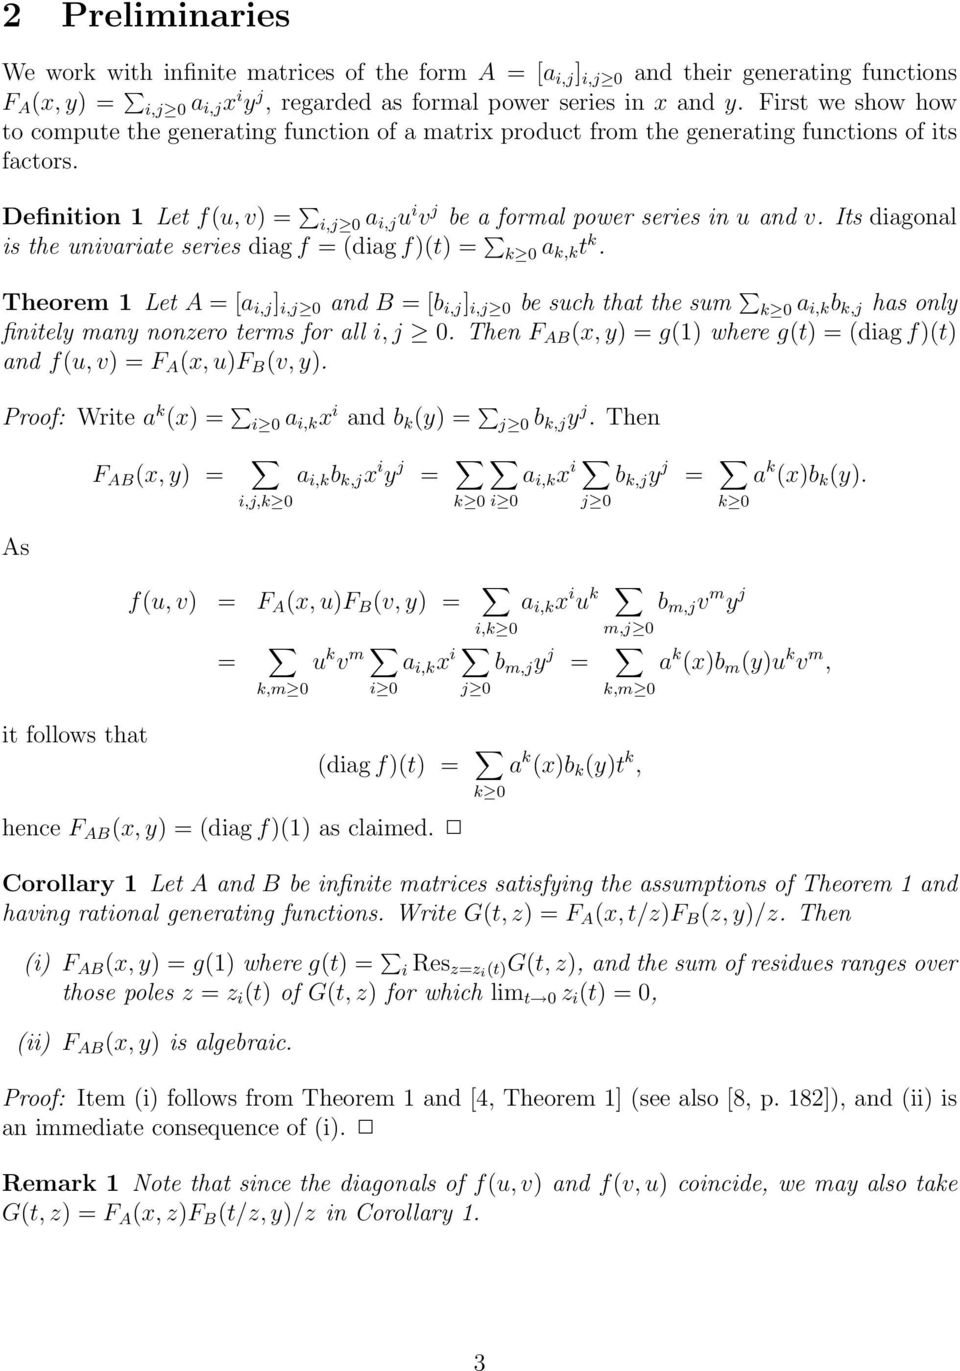 is the univariate series diag f = (diag f)(t) = k 0 a k,k t k Theorem 1 Let A = [a i,j ] i,j 0 and B = [b i,j ] i,j 0 be such that the sum k 0 a i,k b k,j has only finitely many nonzero terms for all